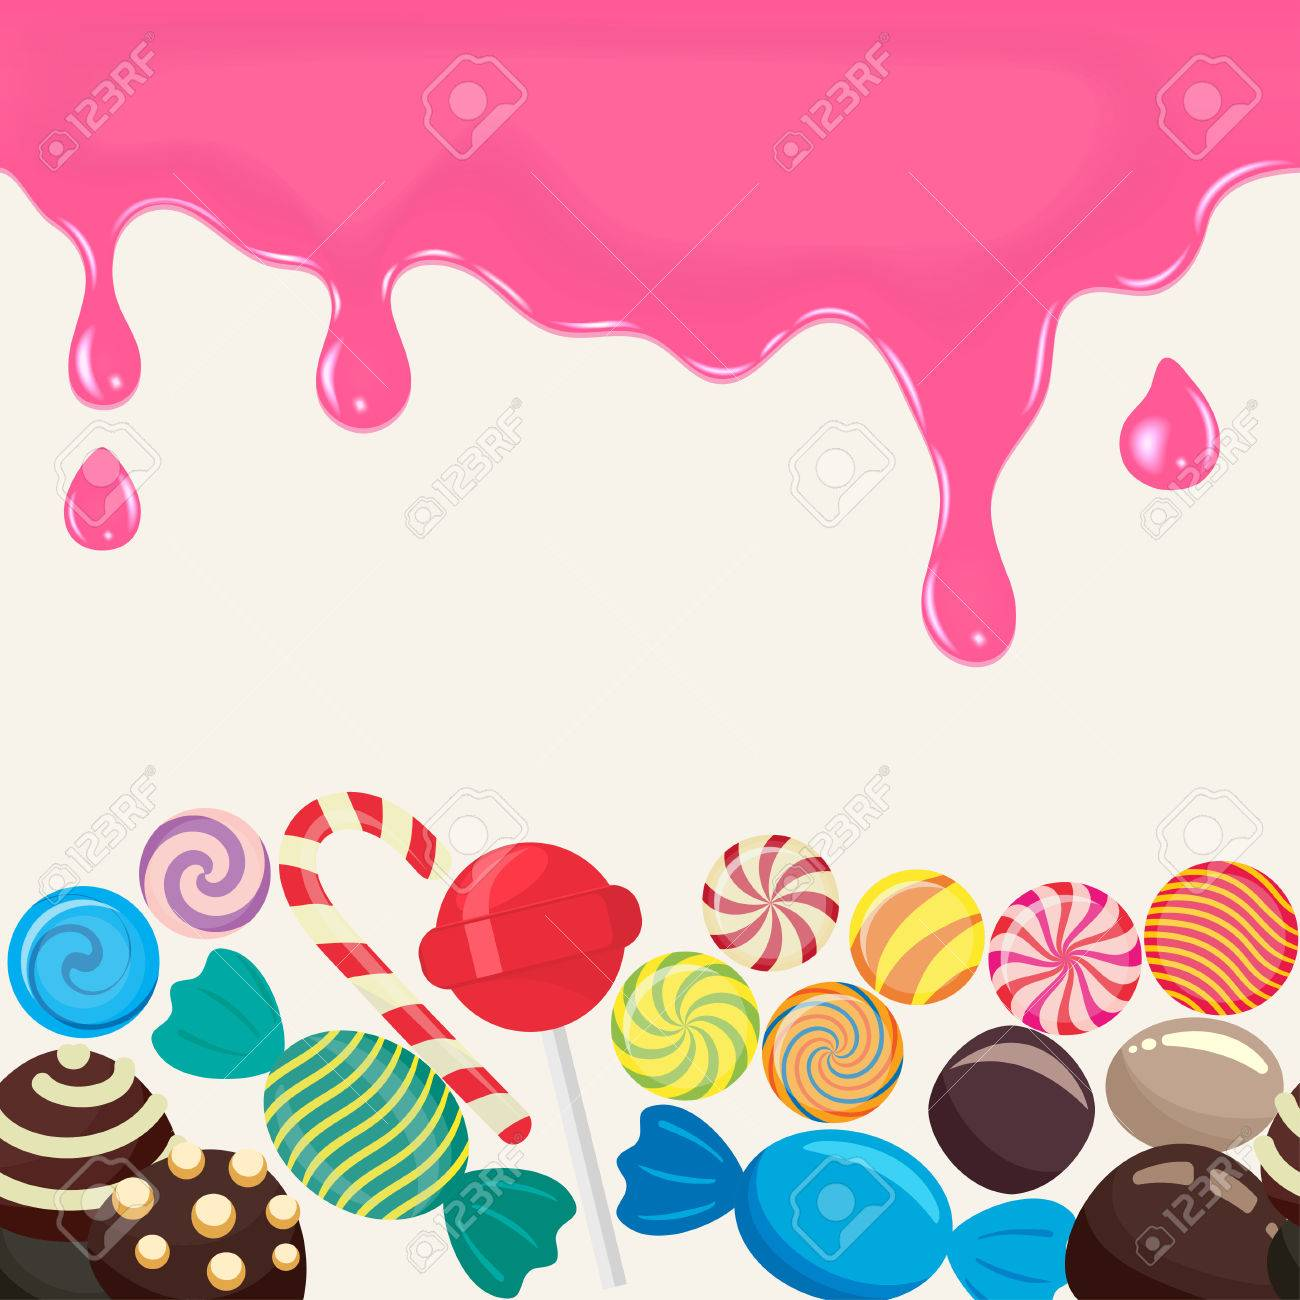 Sweet Candy Endless In The Horizontal Illustration For Menu Design 1300x1300